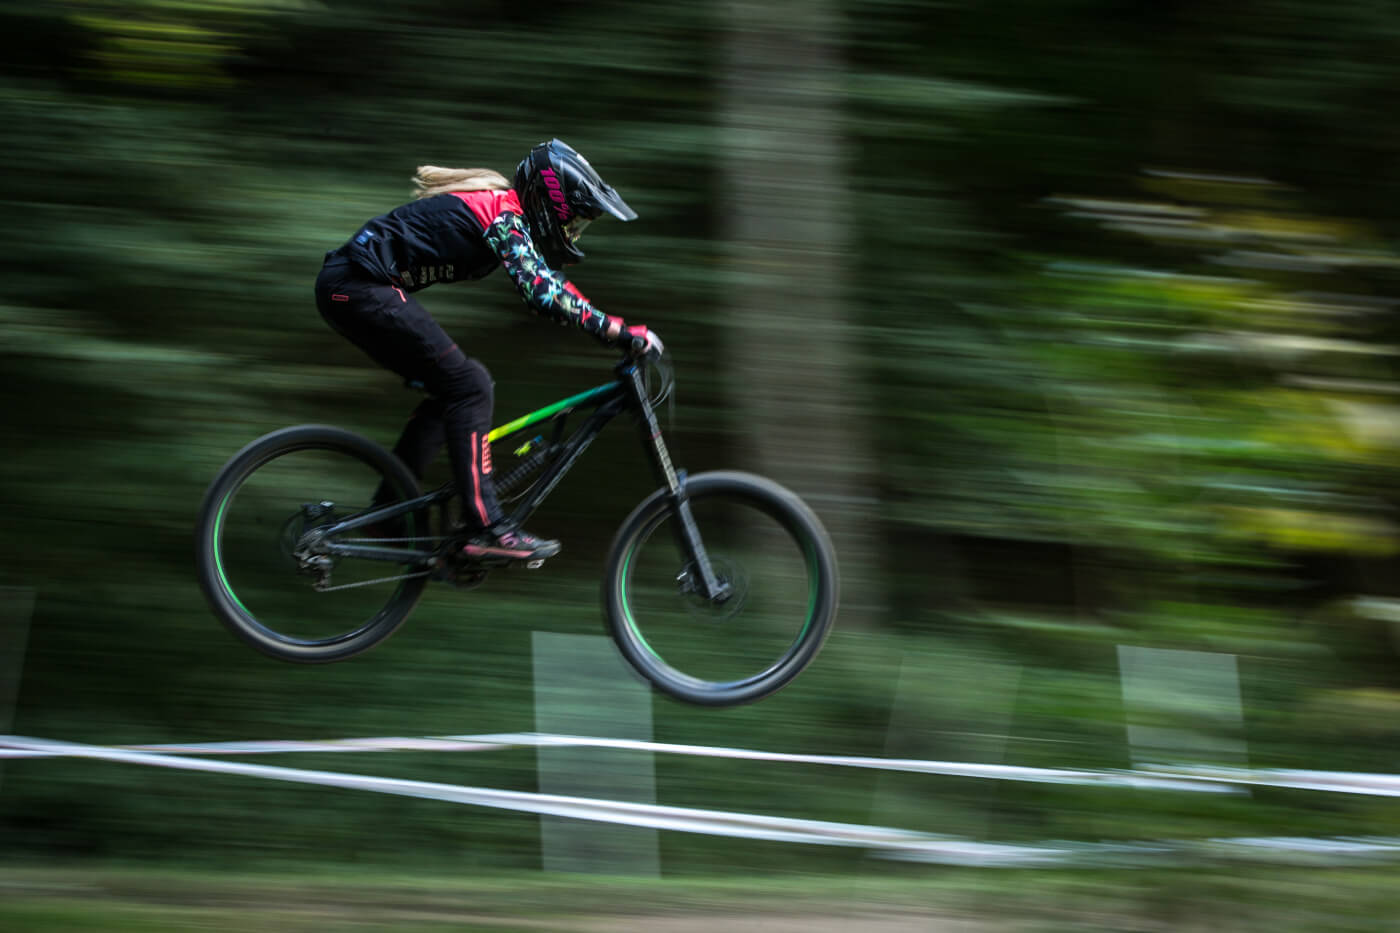 Flow MTB rider Emily Beckett competed in the 2018 Pearce Downhill Series